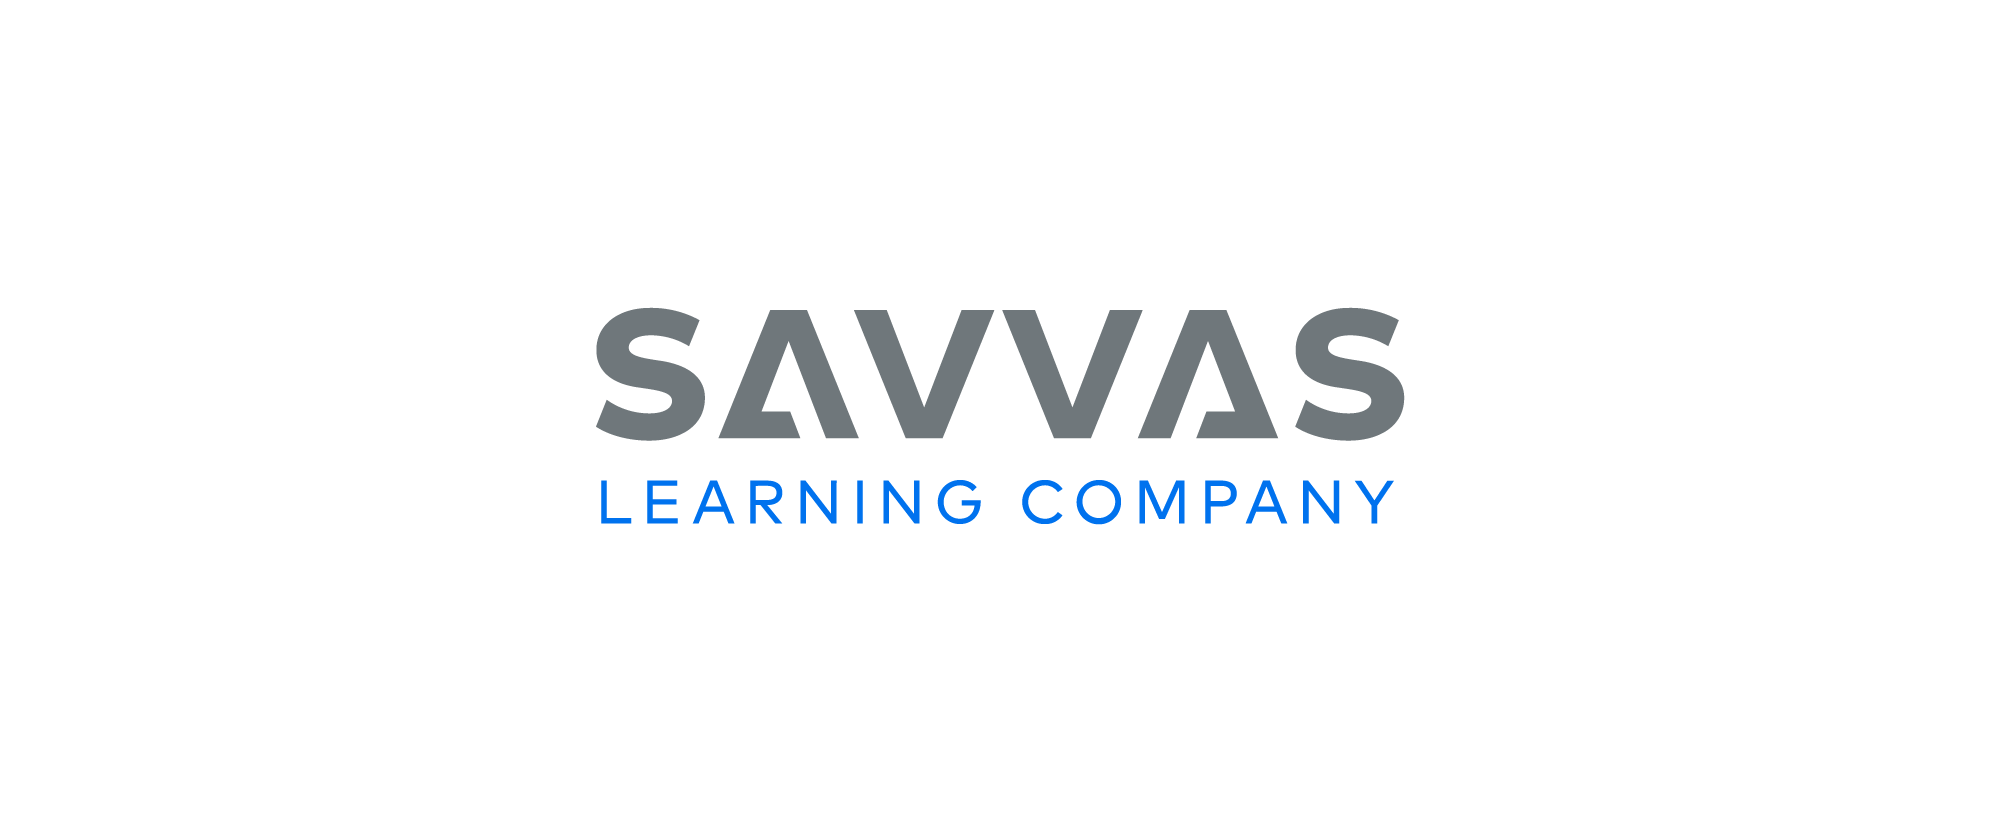 New Name and Logo for Savvas